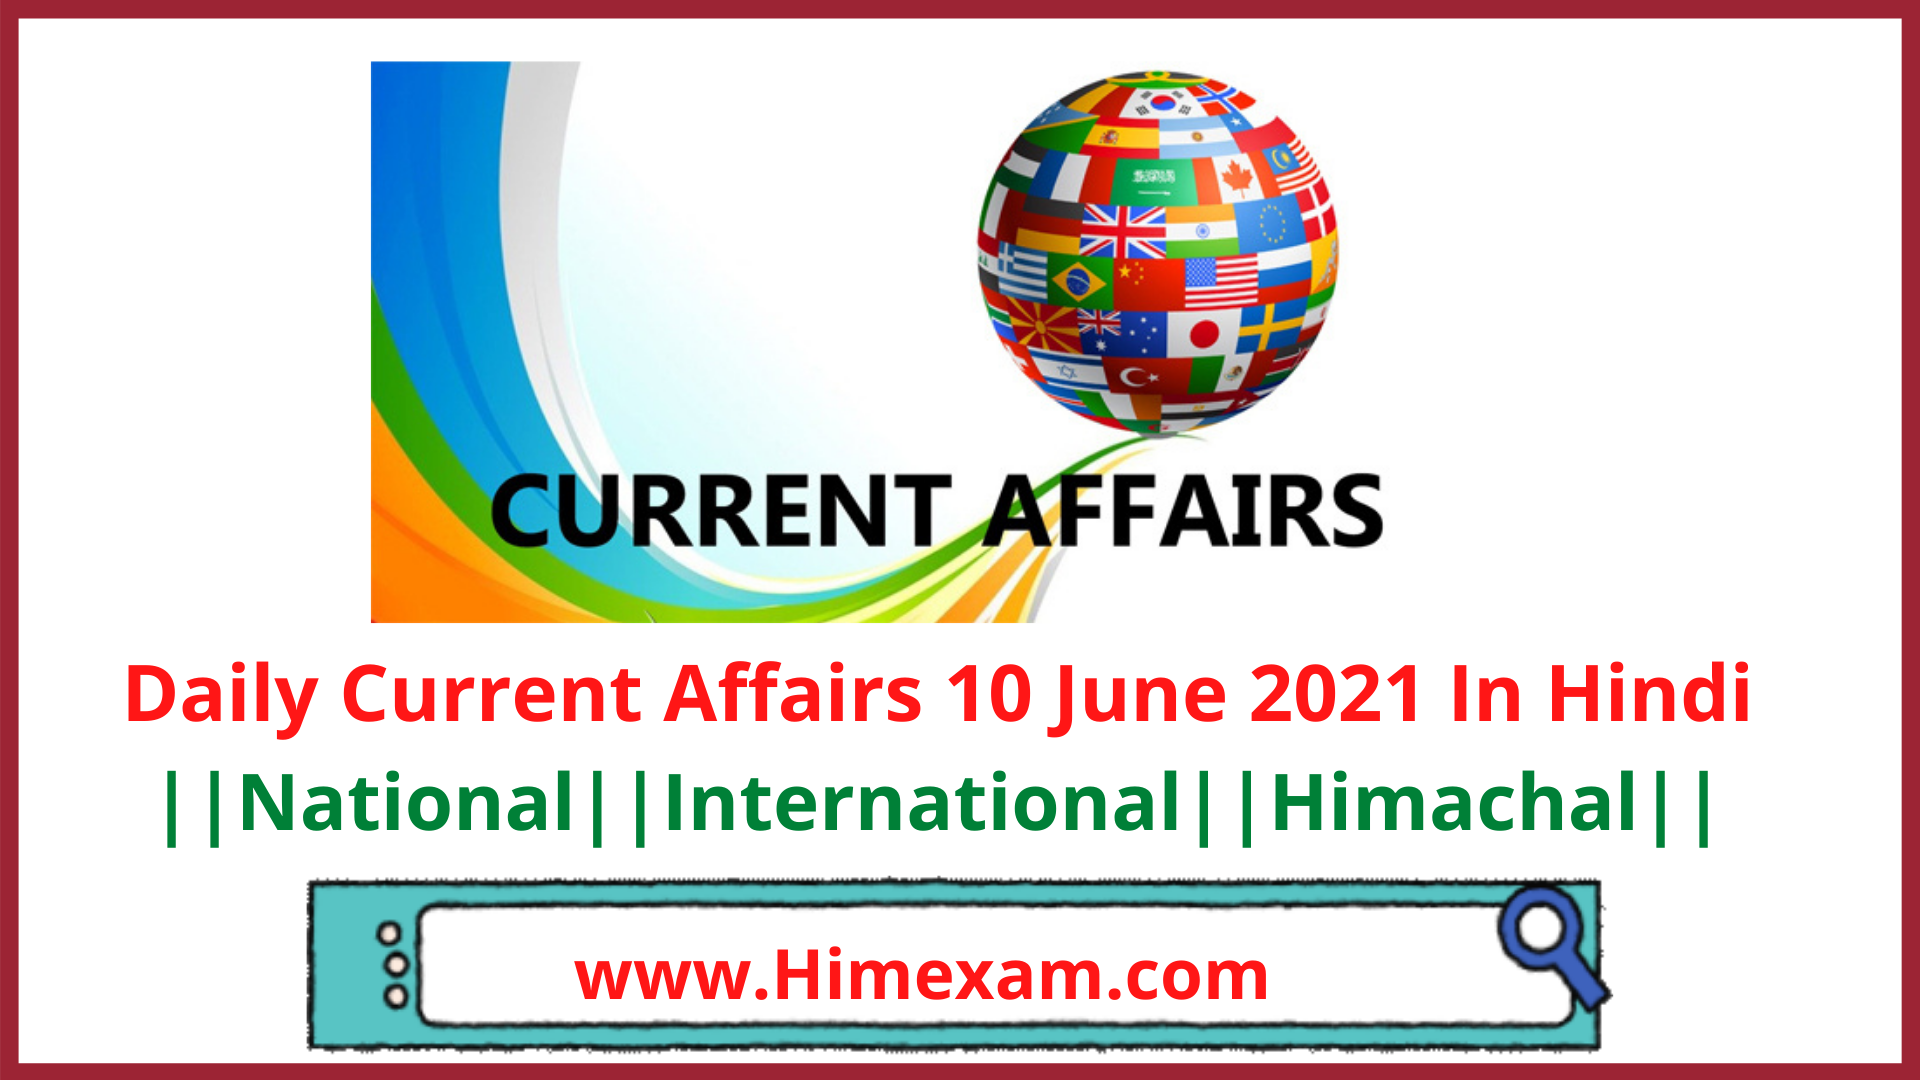 Daily Current Affairs 10 June 2021 In Hindi